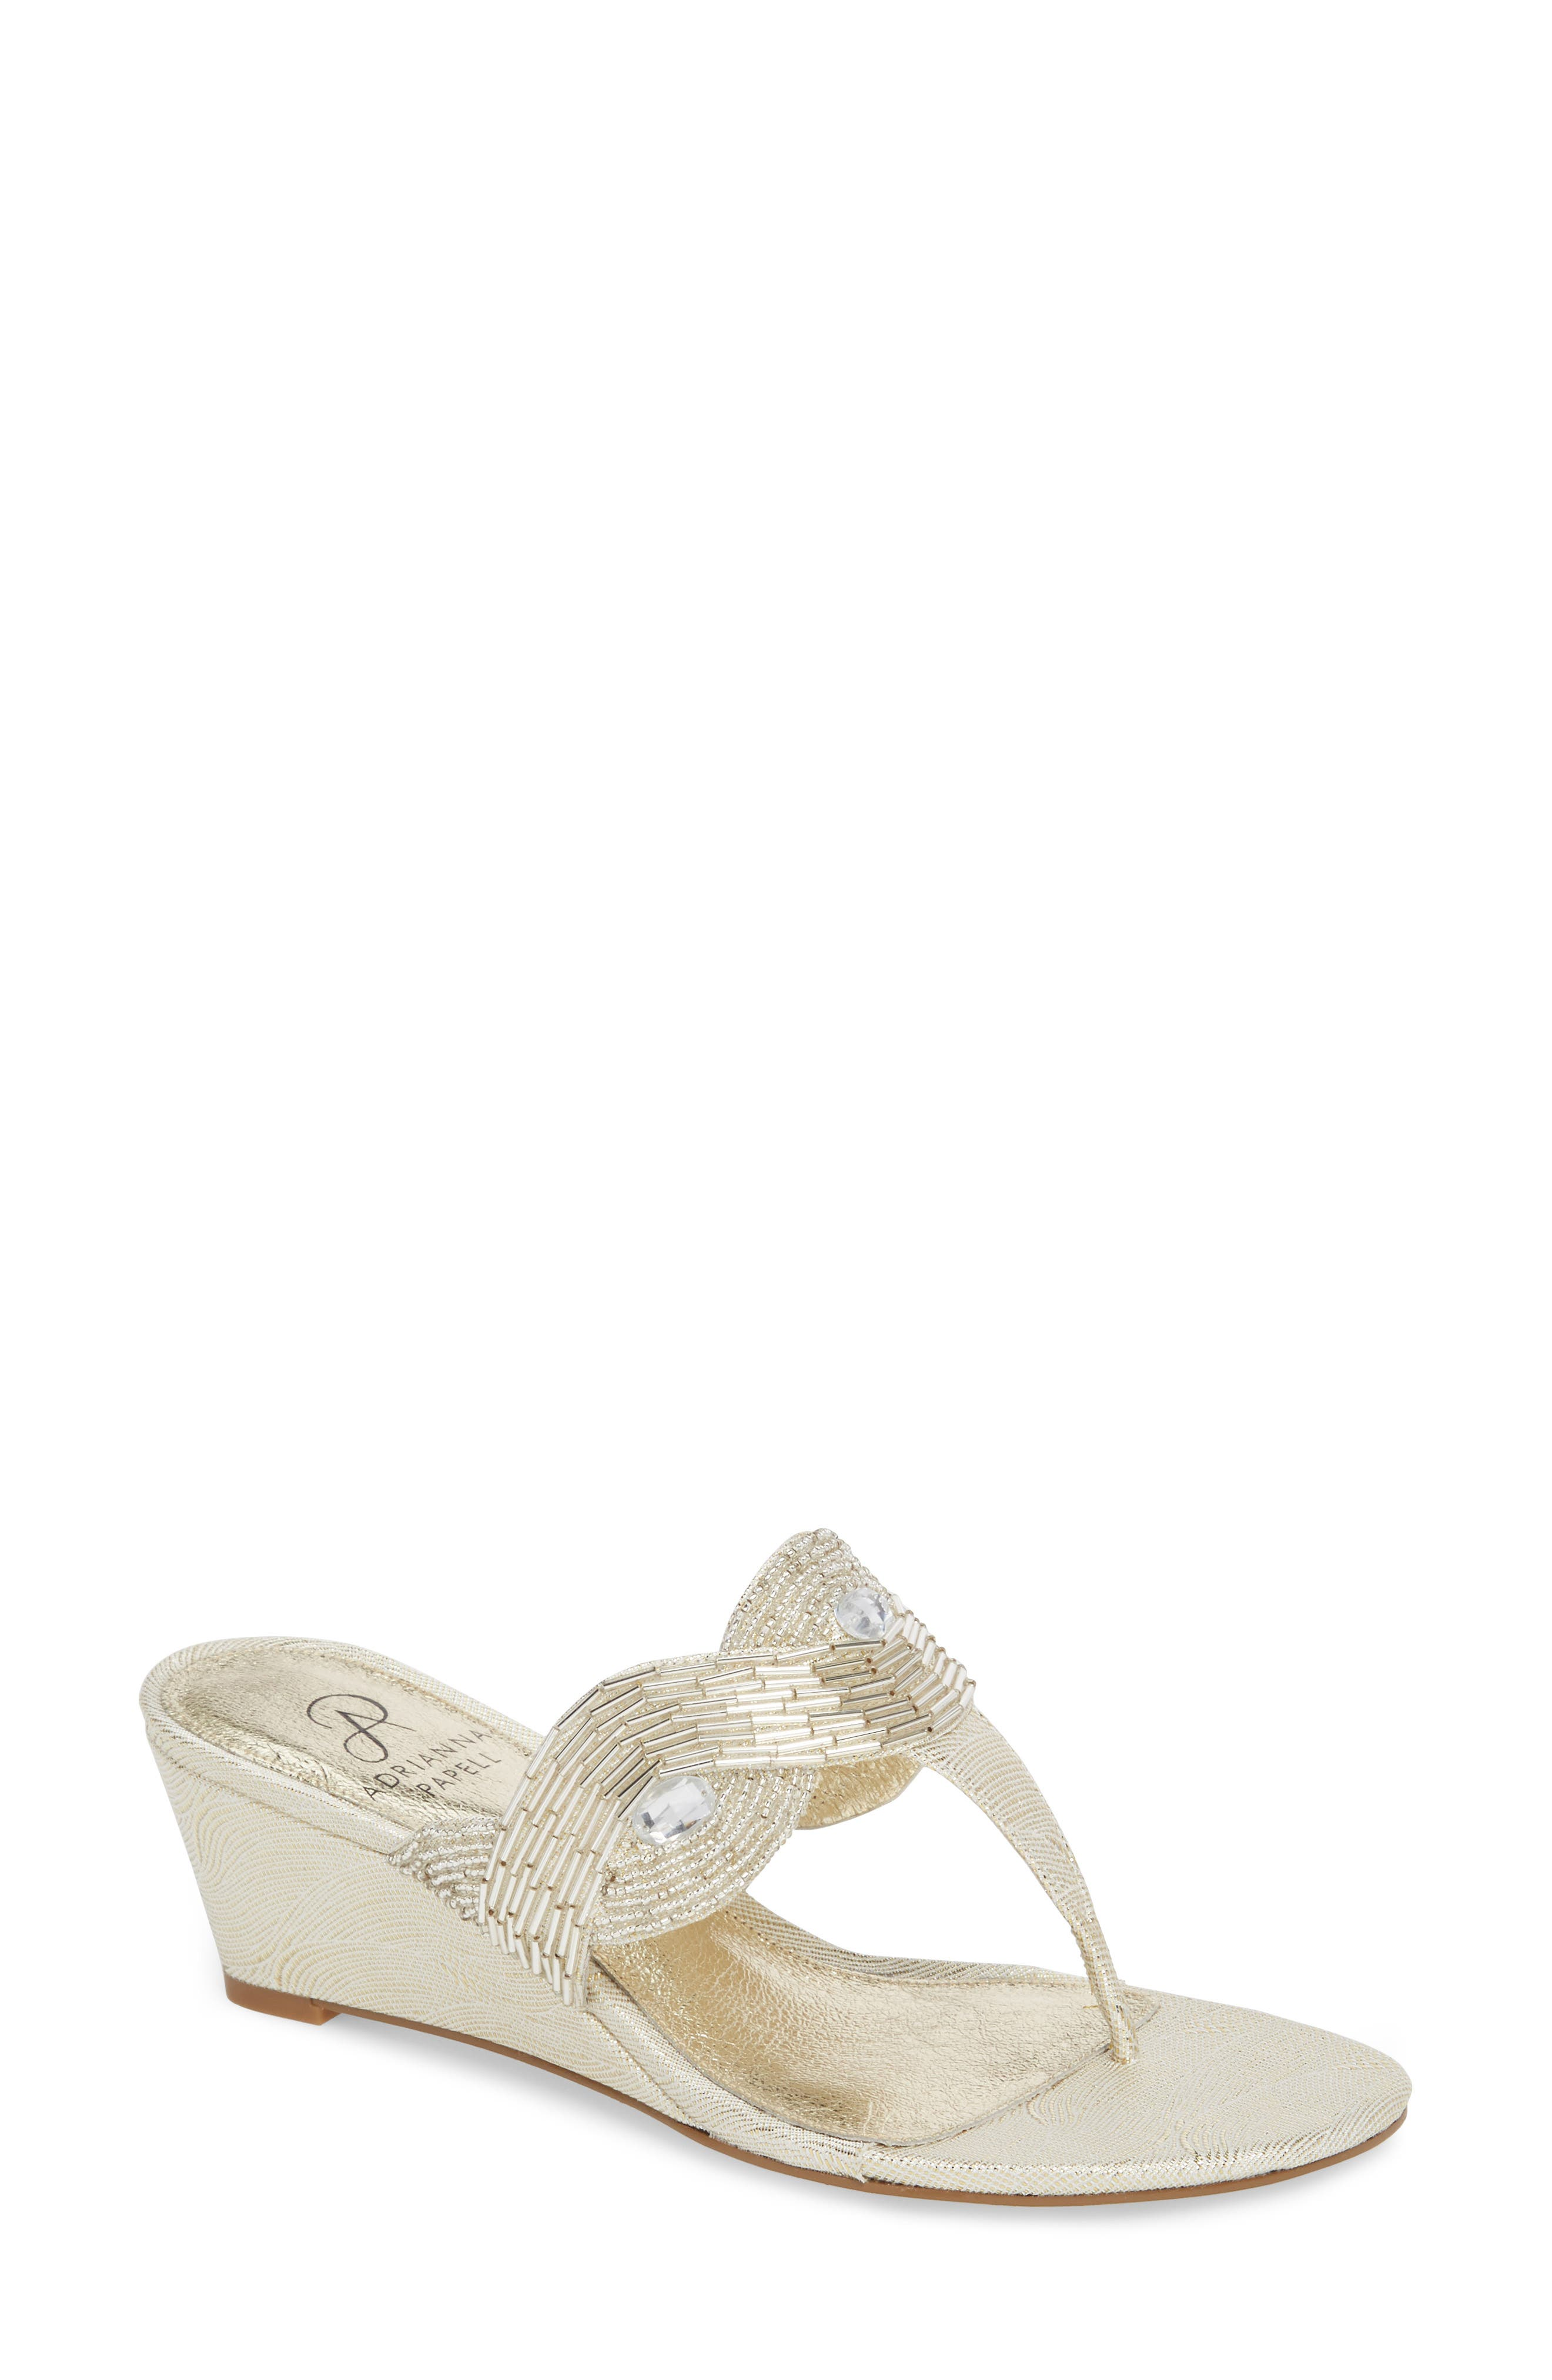 Adrianna Papell Coco Beaded Wedge Sandal (Women)